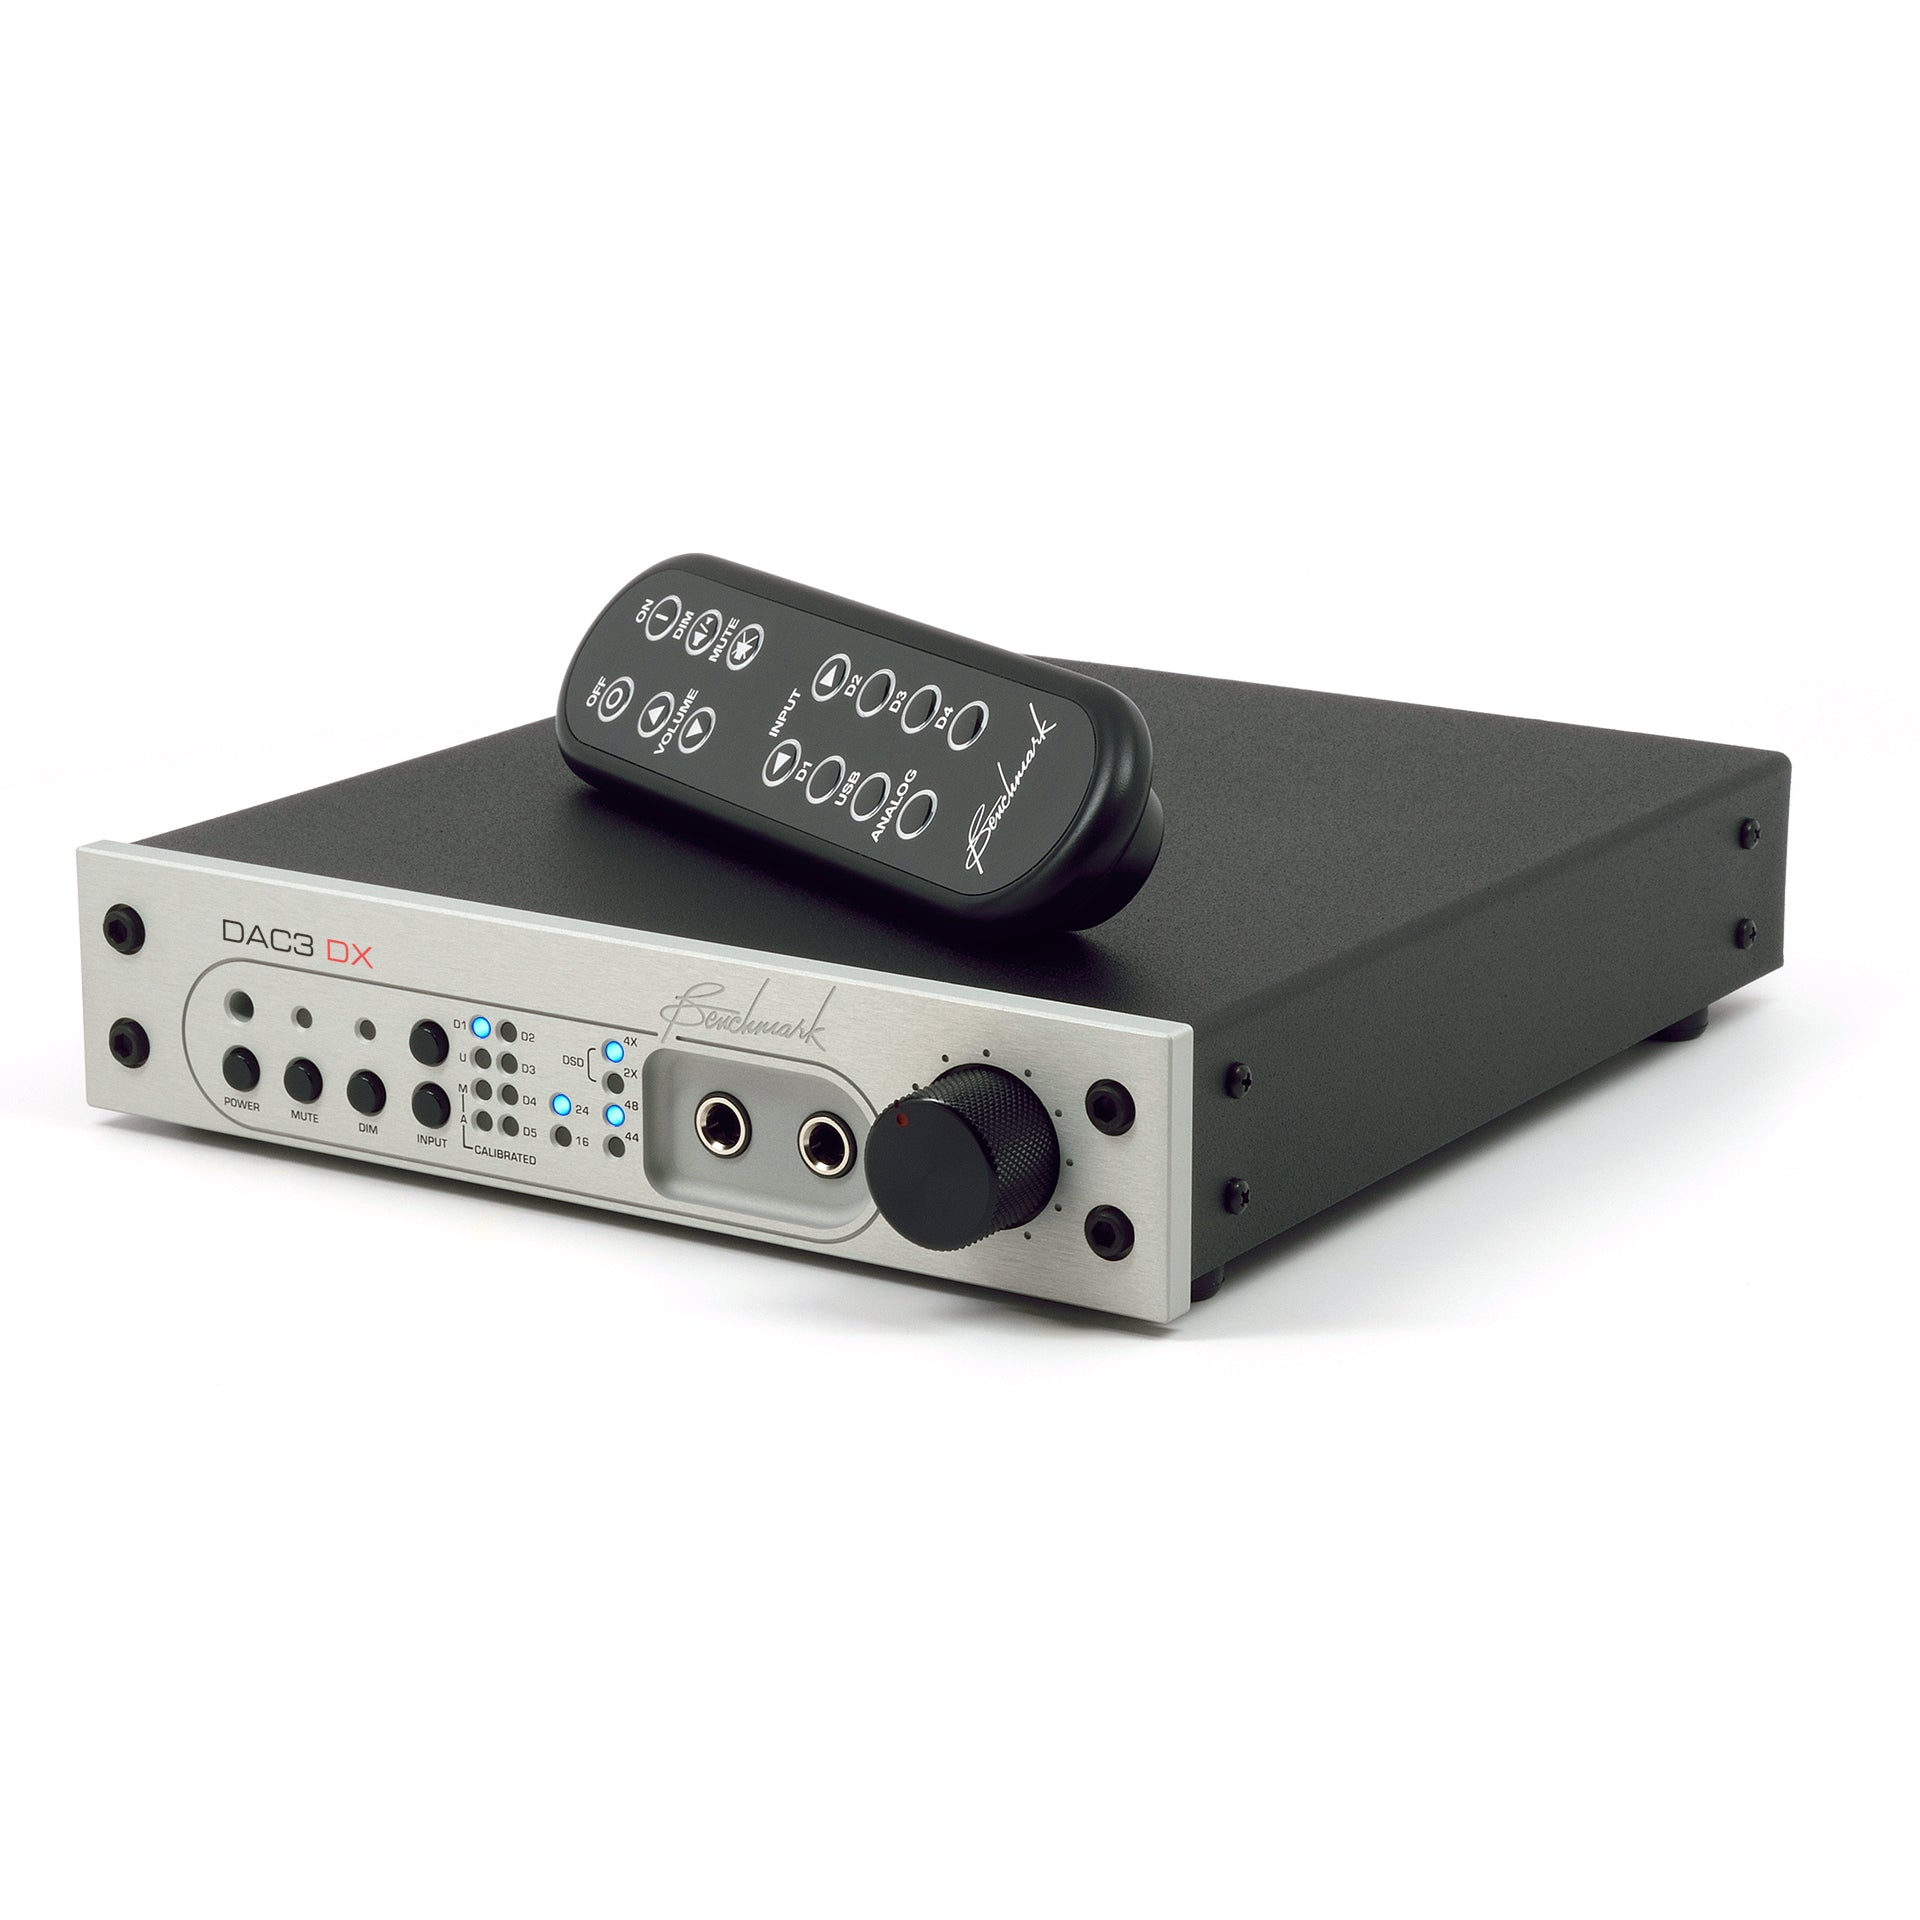 Benchmark DAC3 DX - Digital to Analog Audio Converter